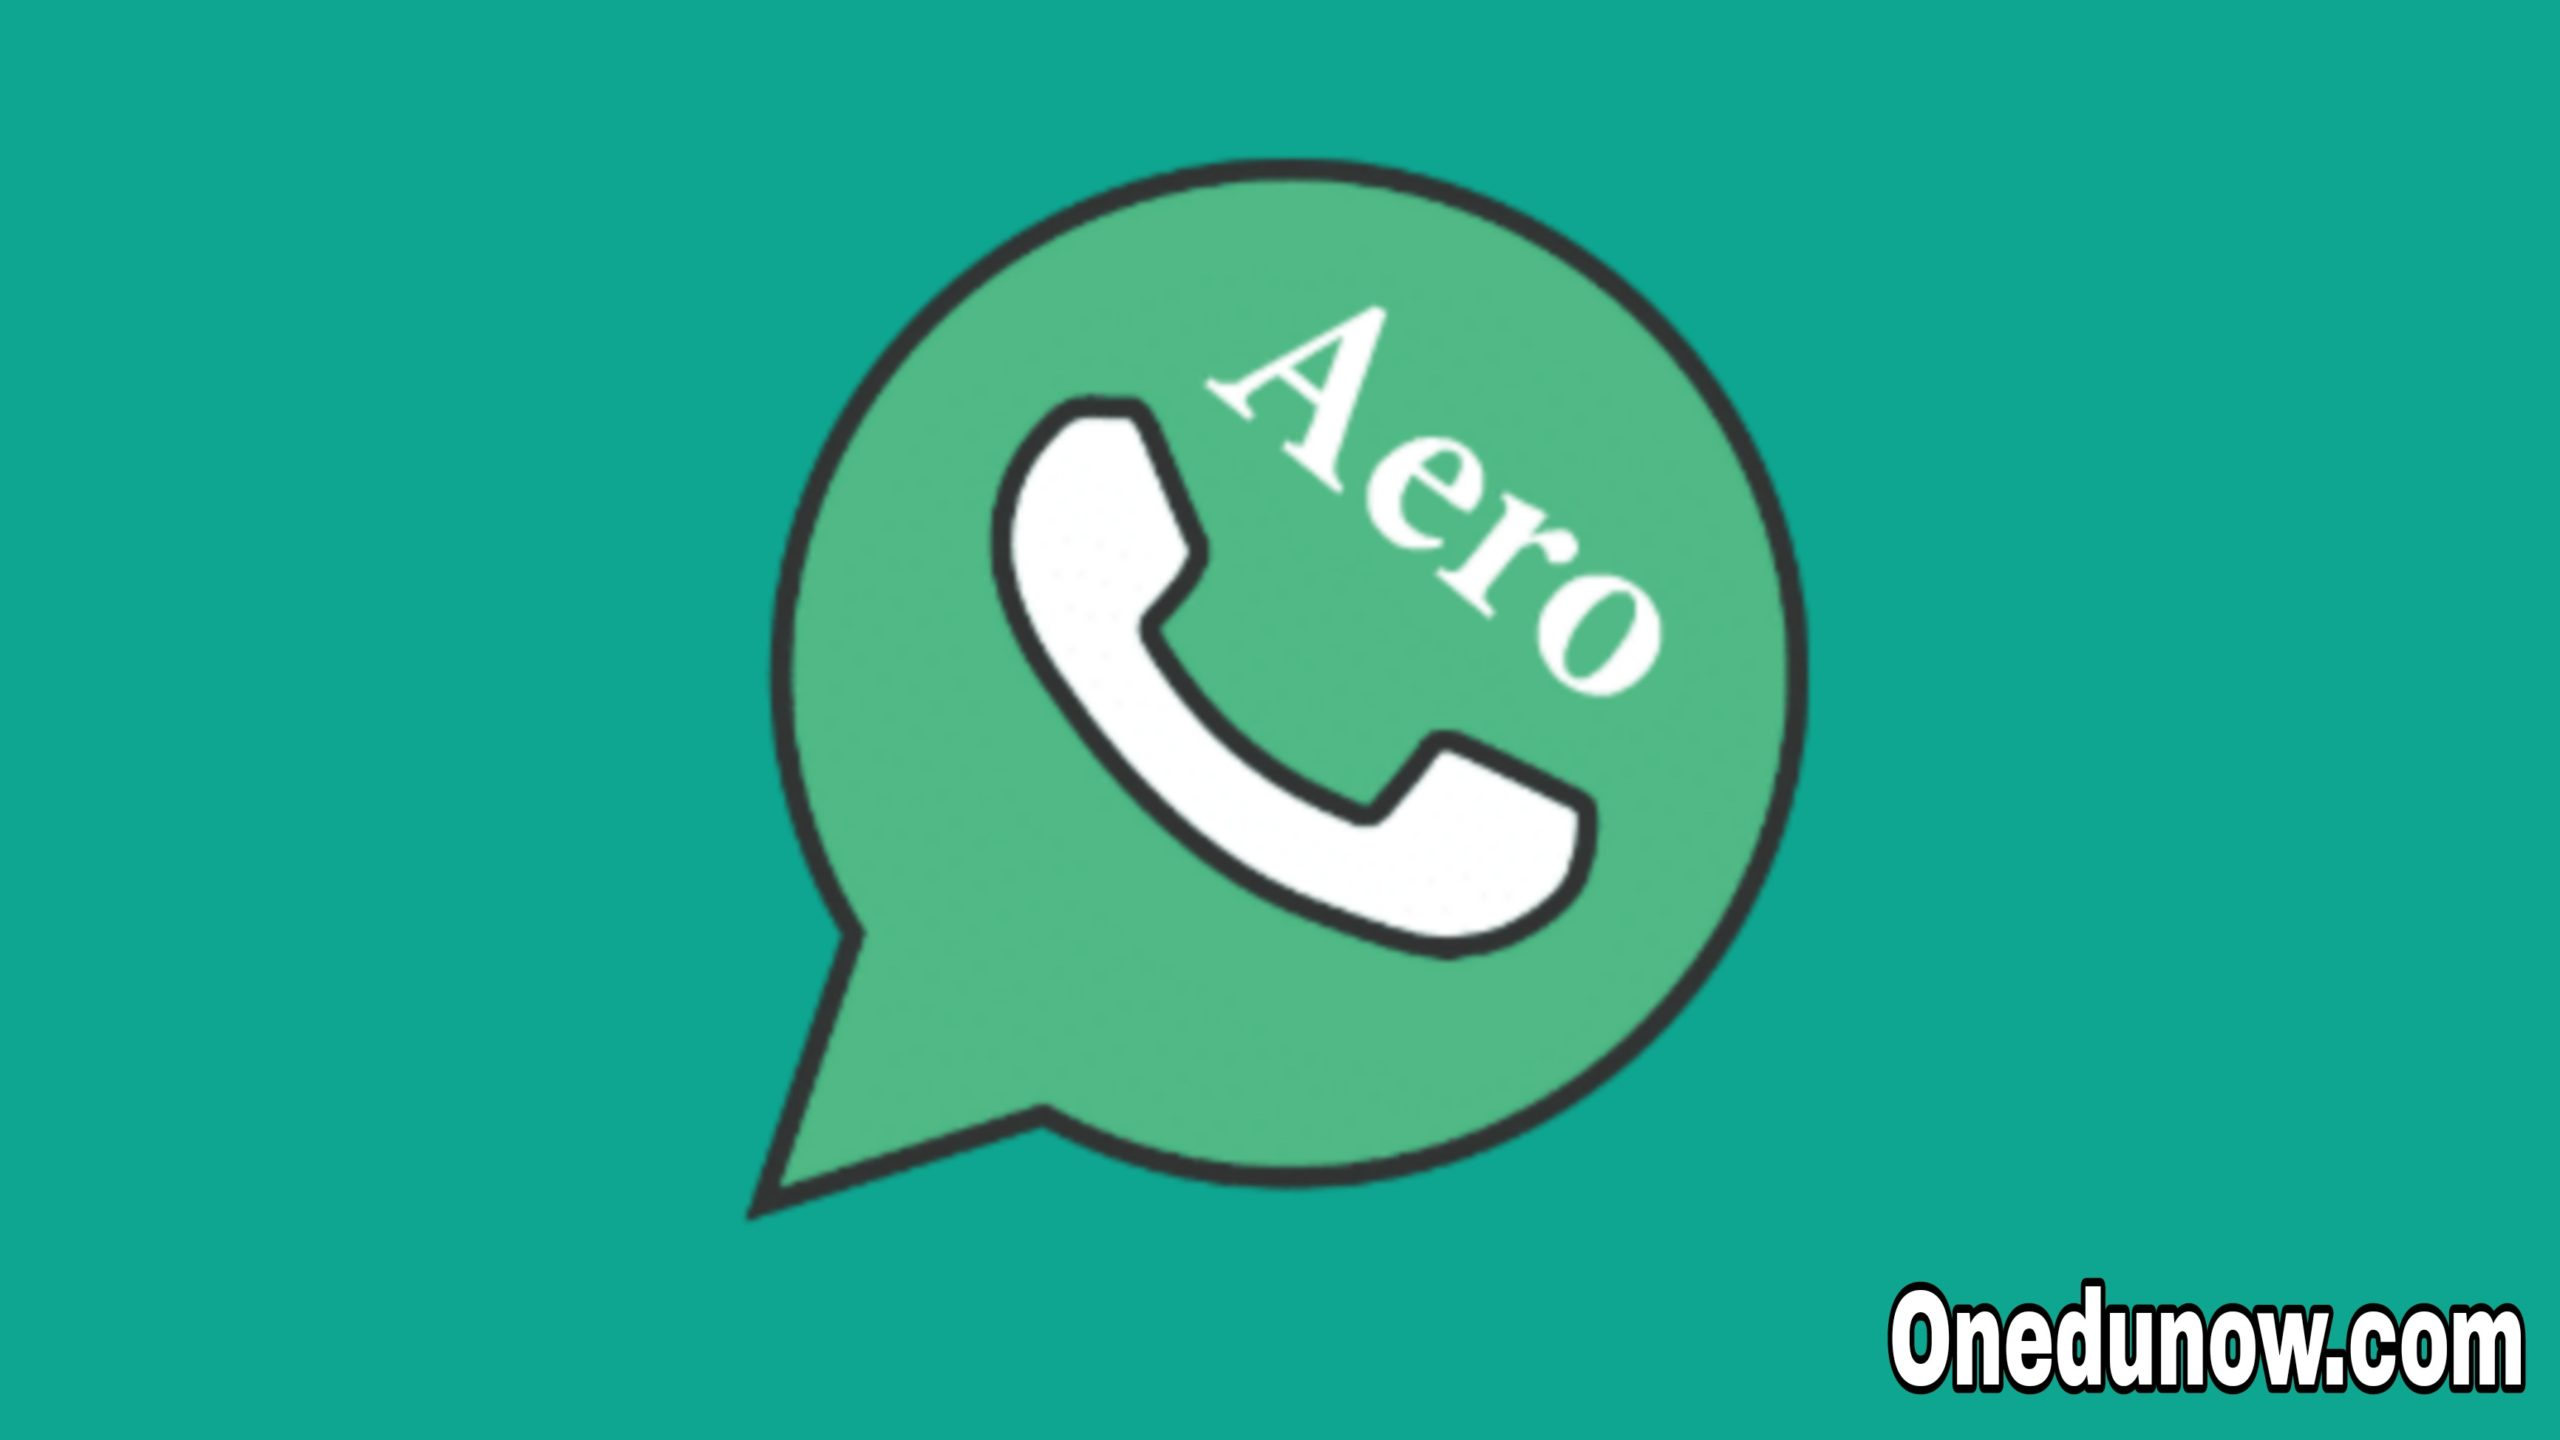 WhatsApp Aero APK v17.30.2 Free Download for Android